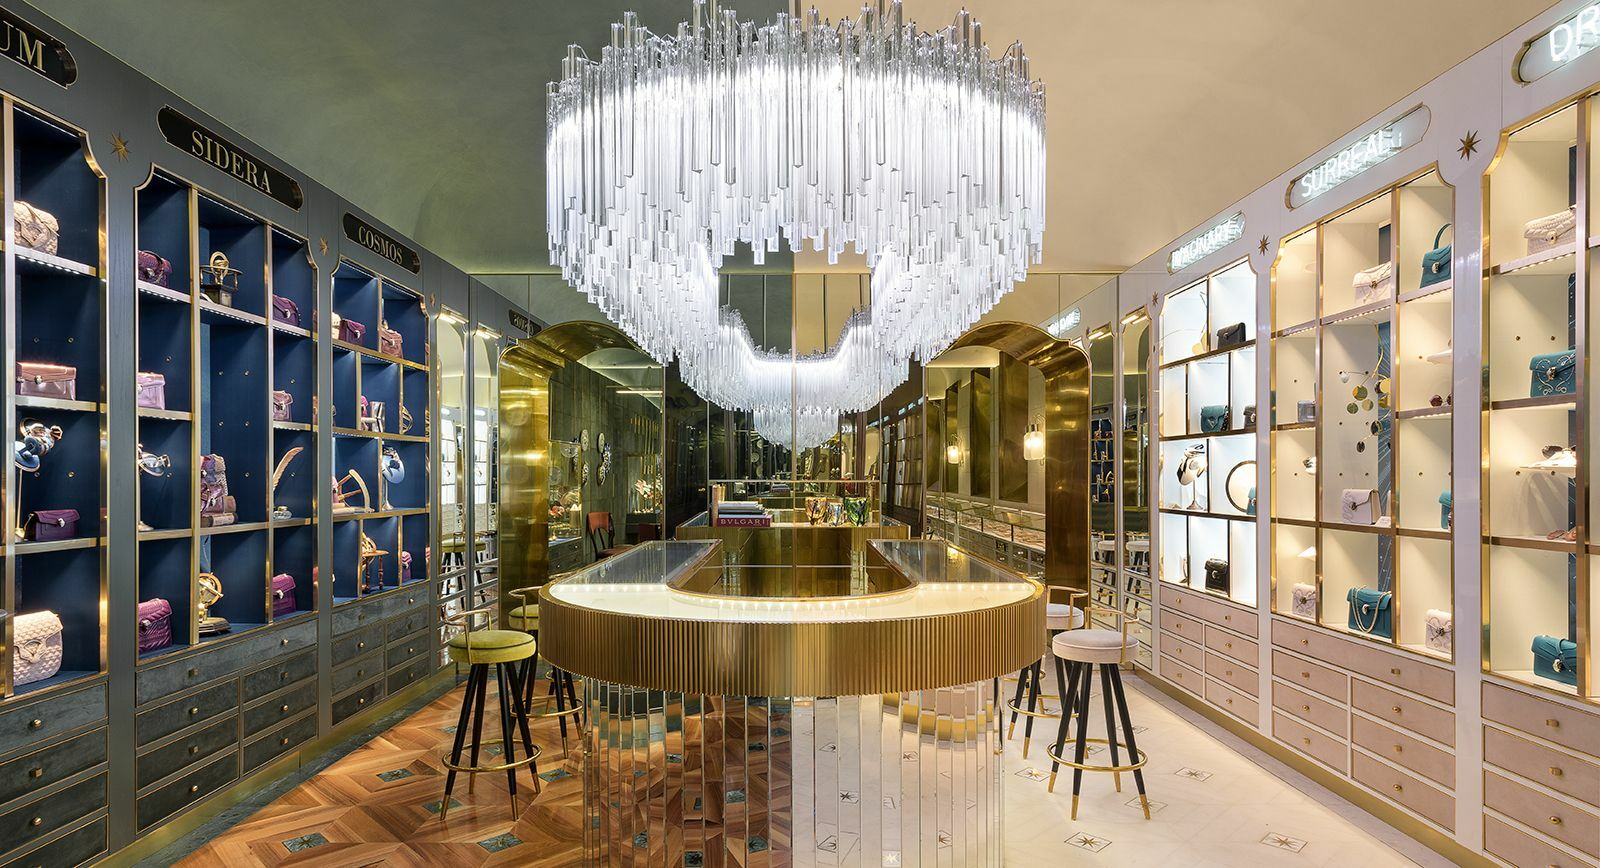 Bulgari: 'New Curiosity Shop' Concept Store